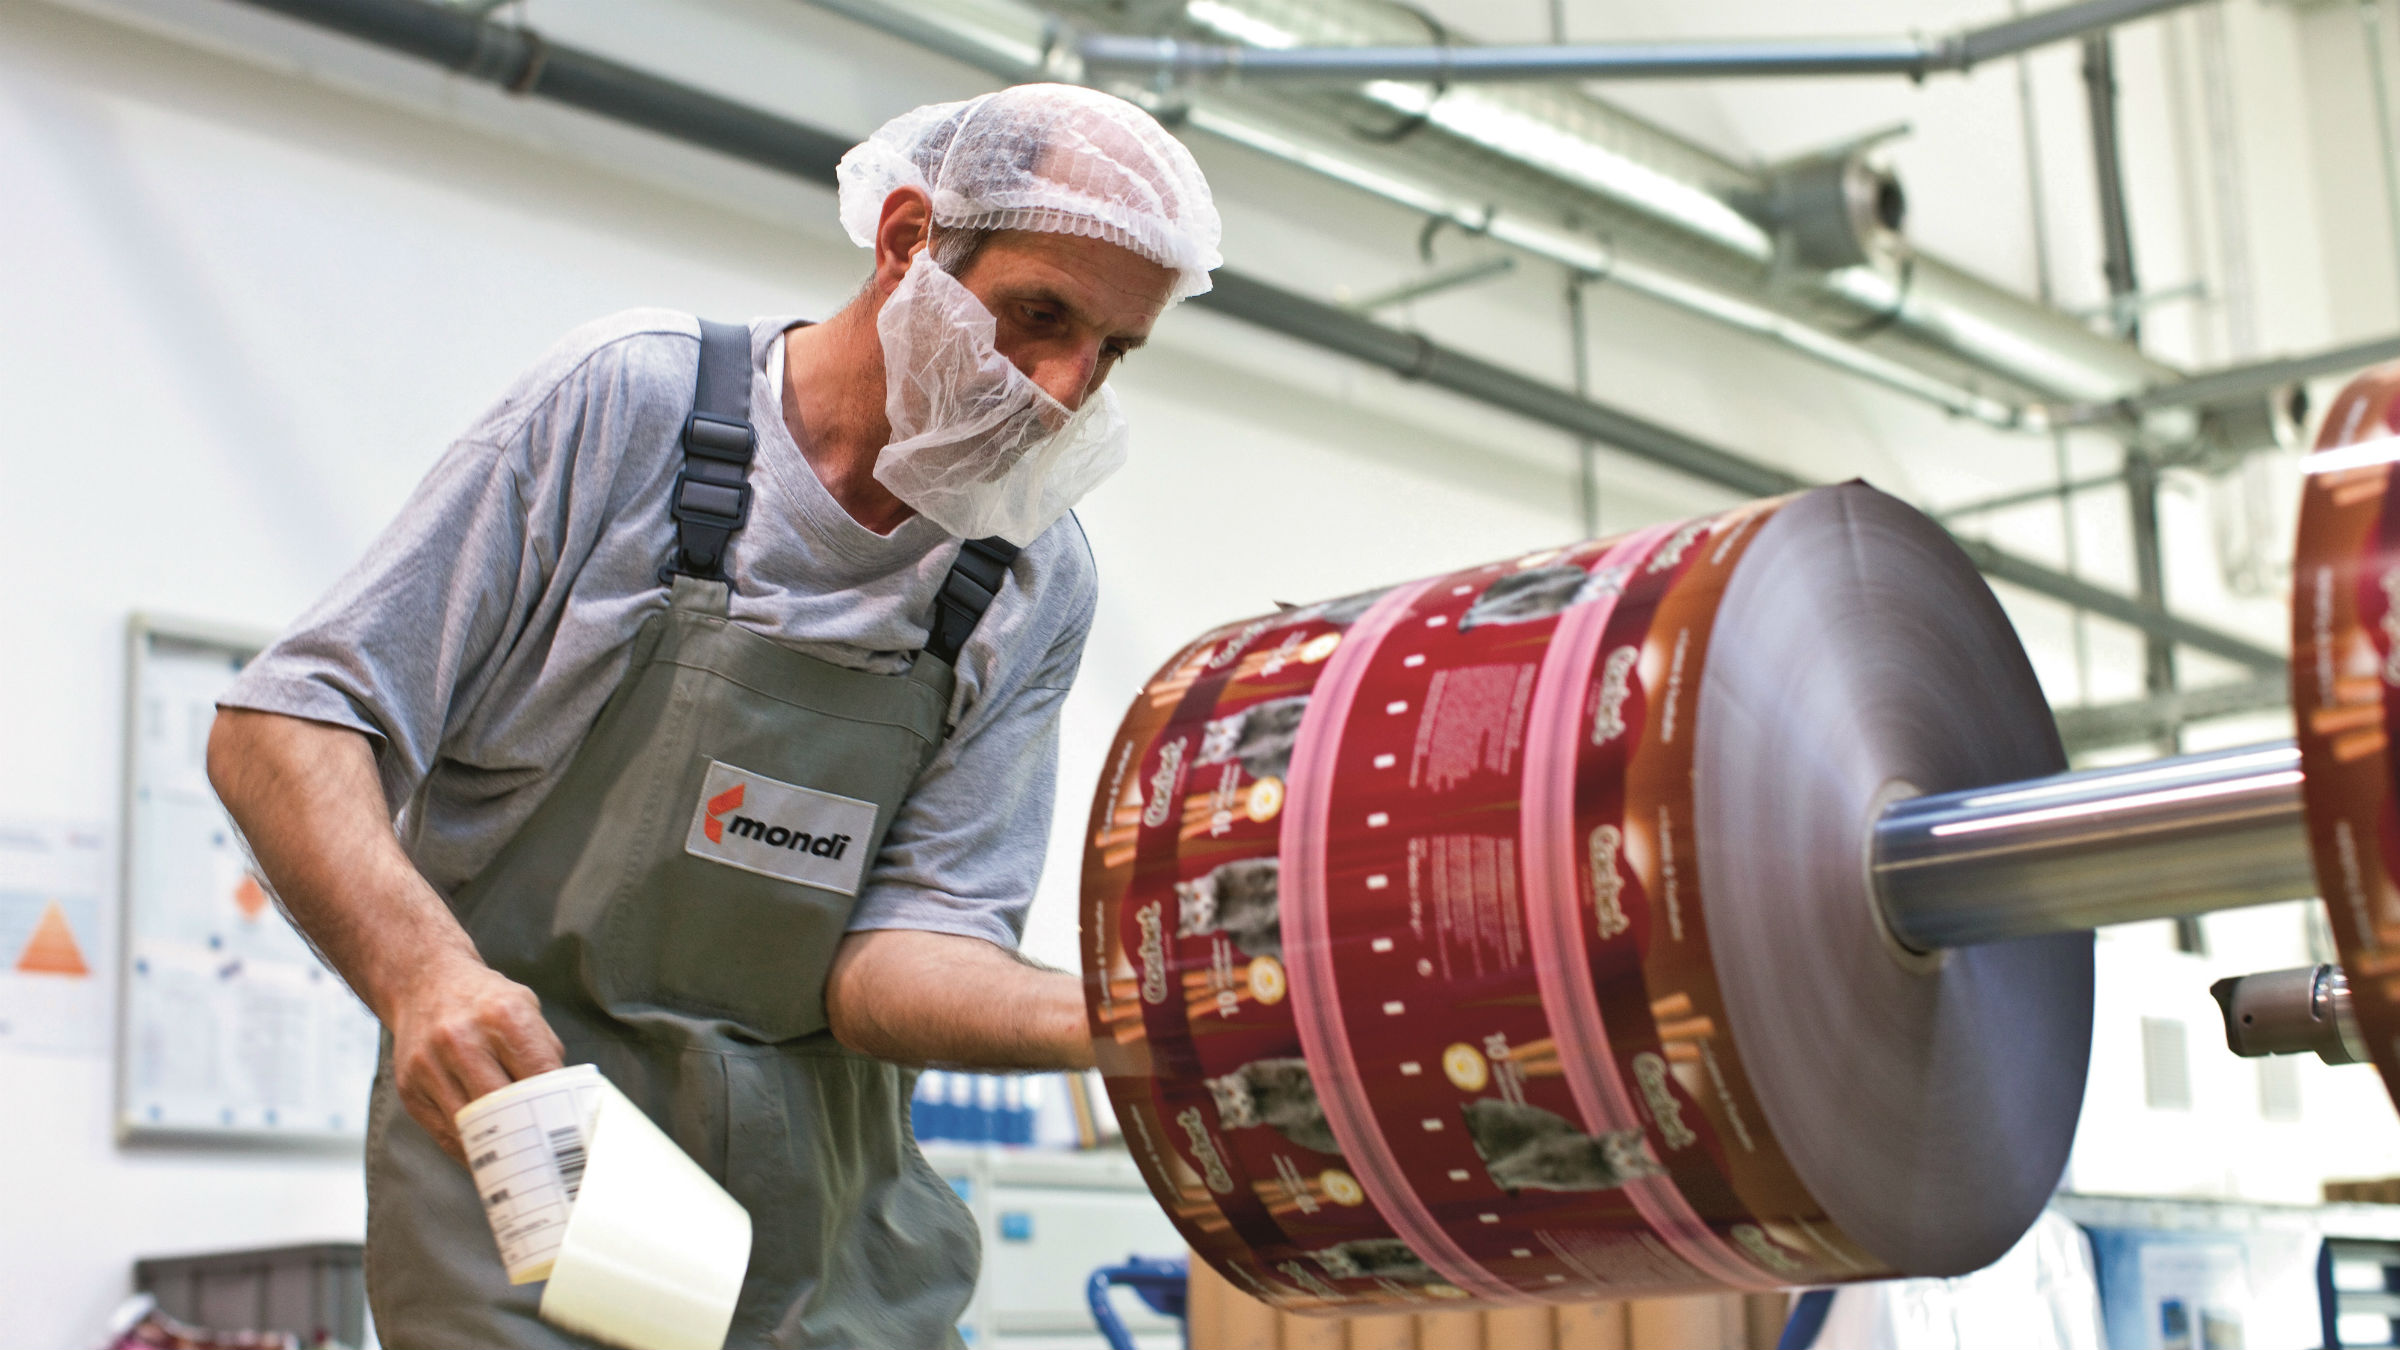 Mondi consumer goods packaging production in Austria. (Source: Mondi)